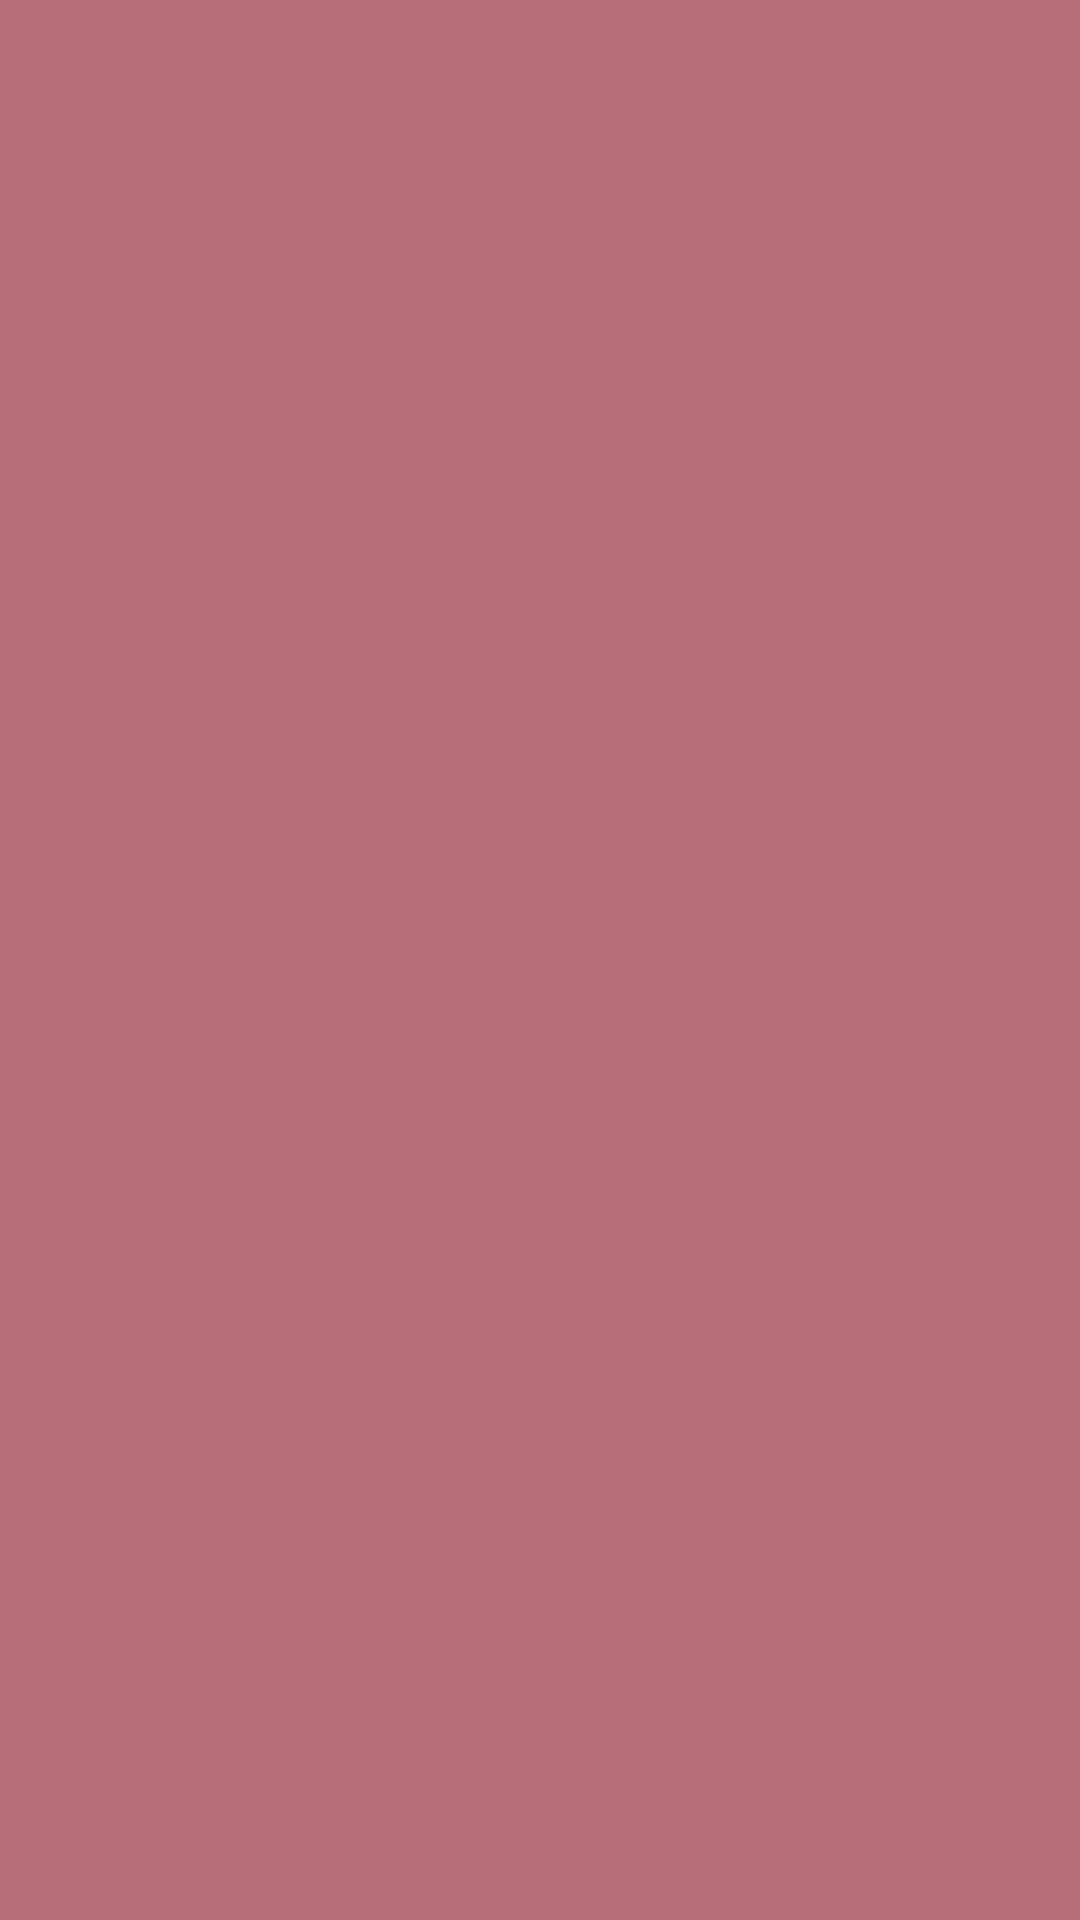 1080x1920 Rose Gold Solid Color Background